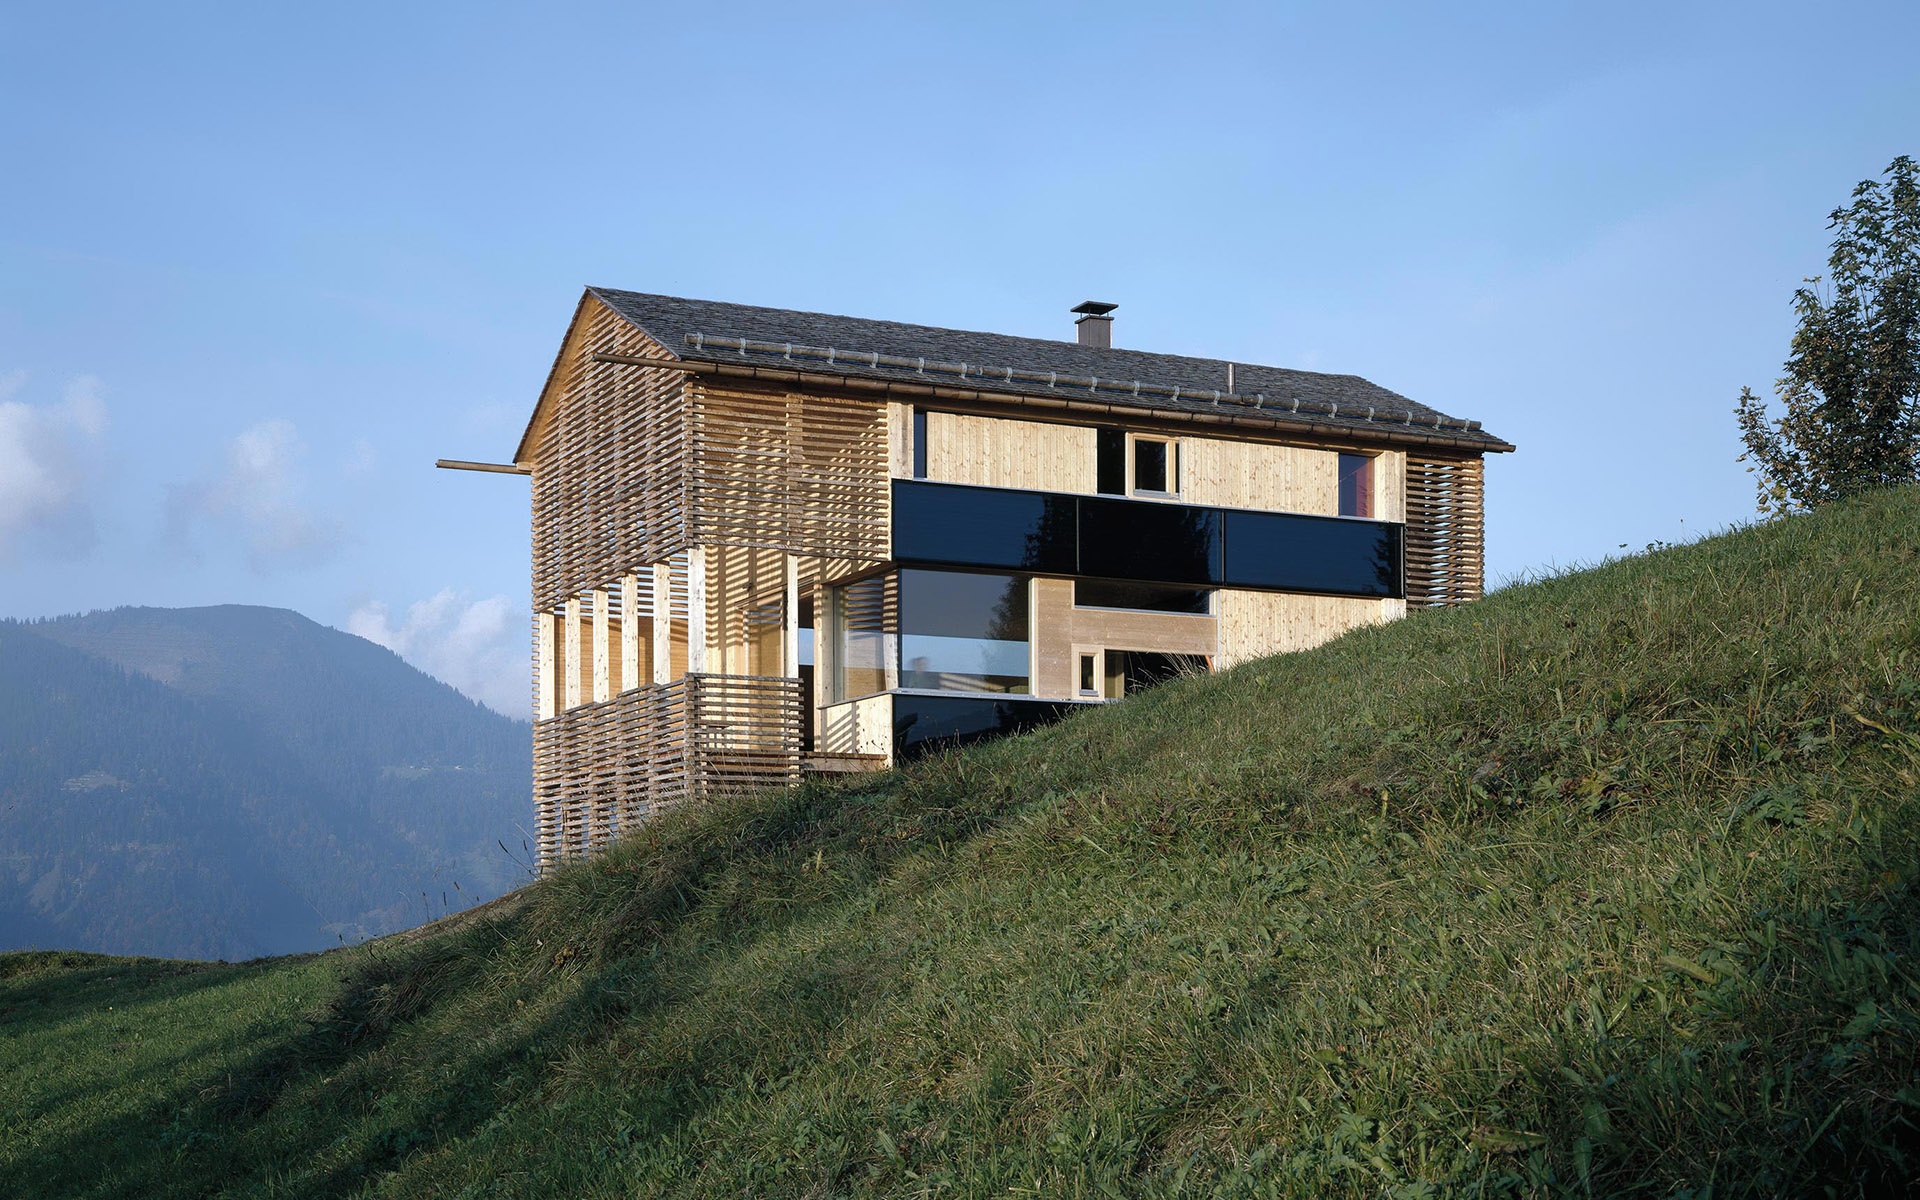 Mountain hut immersed in the alpine landscape